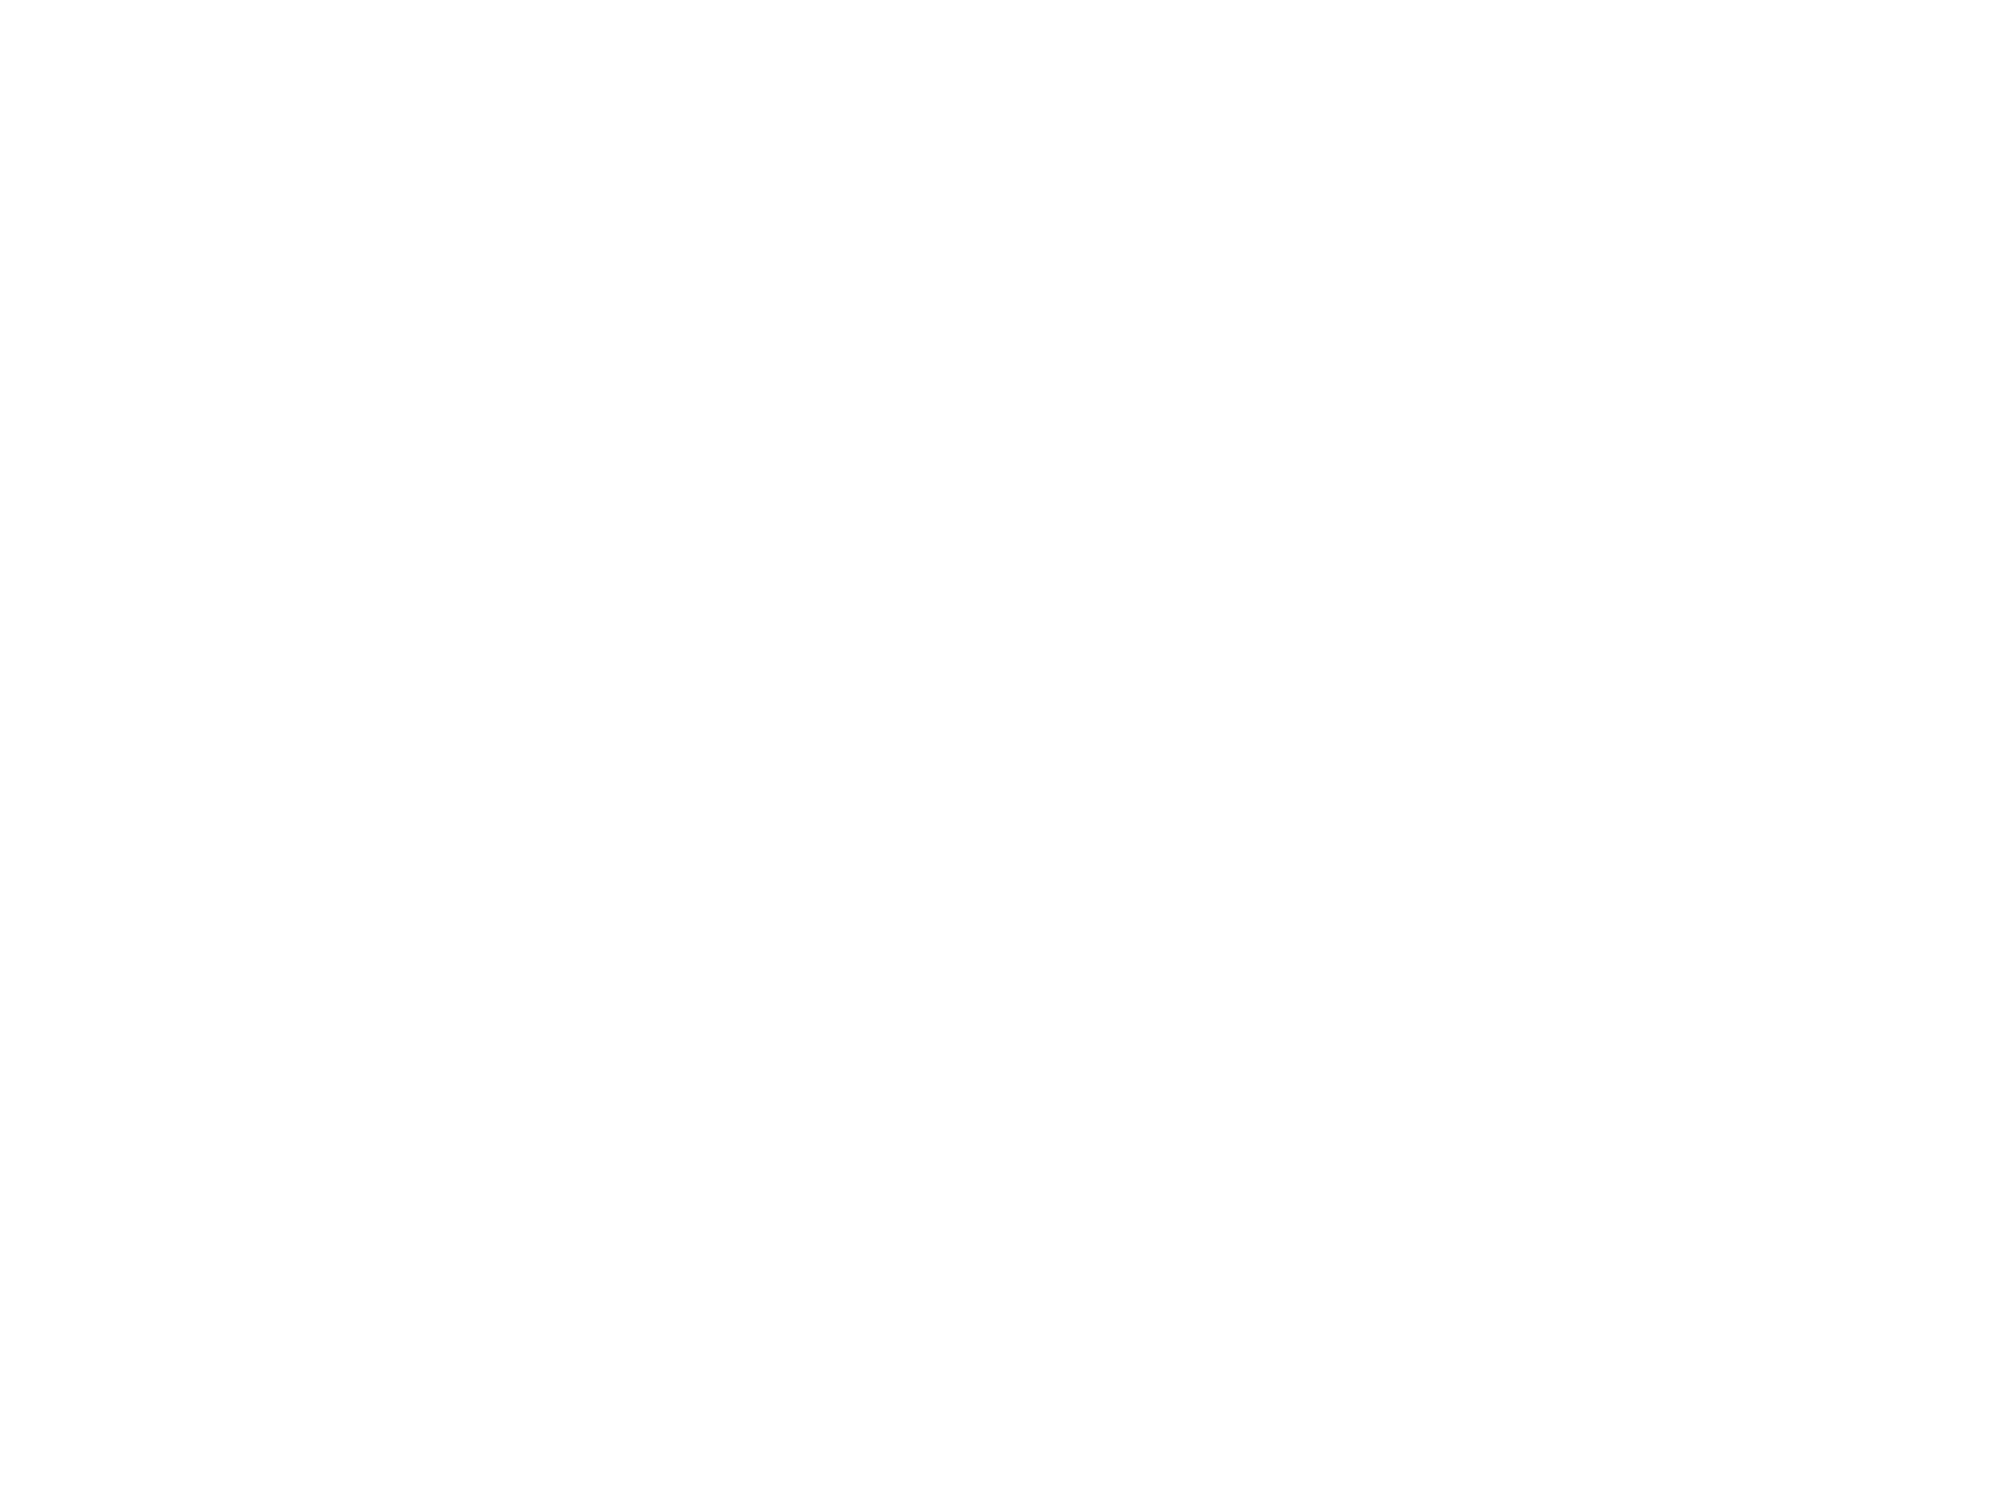 An illustration of two men holding hands outside a building.